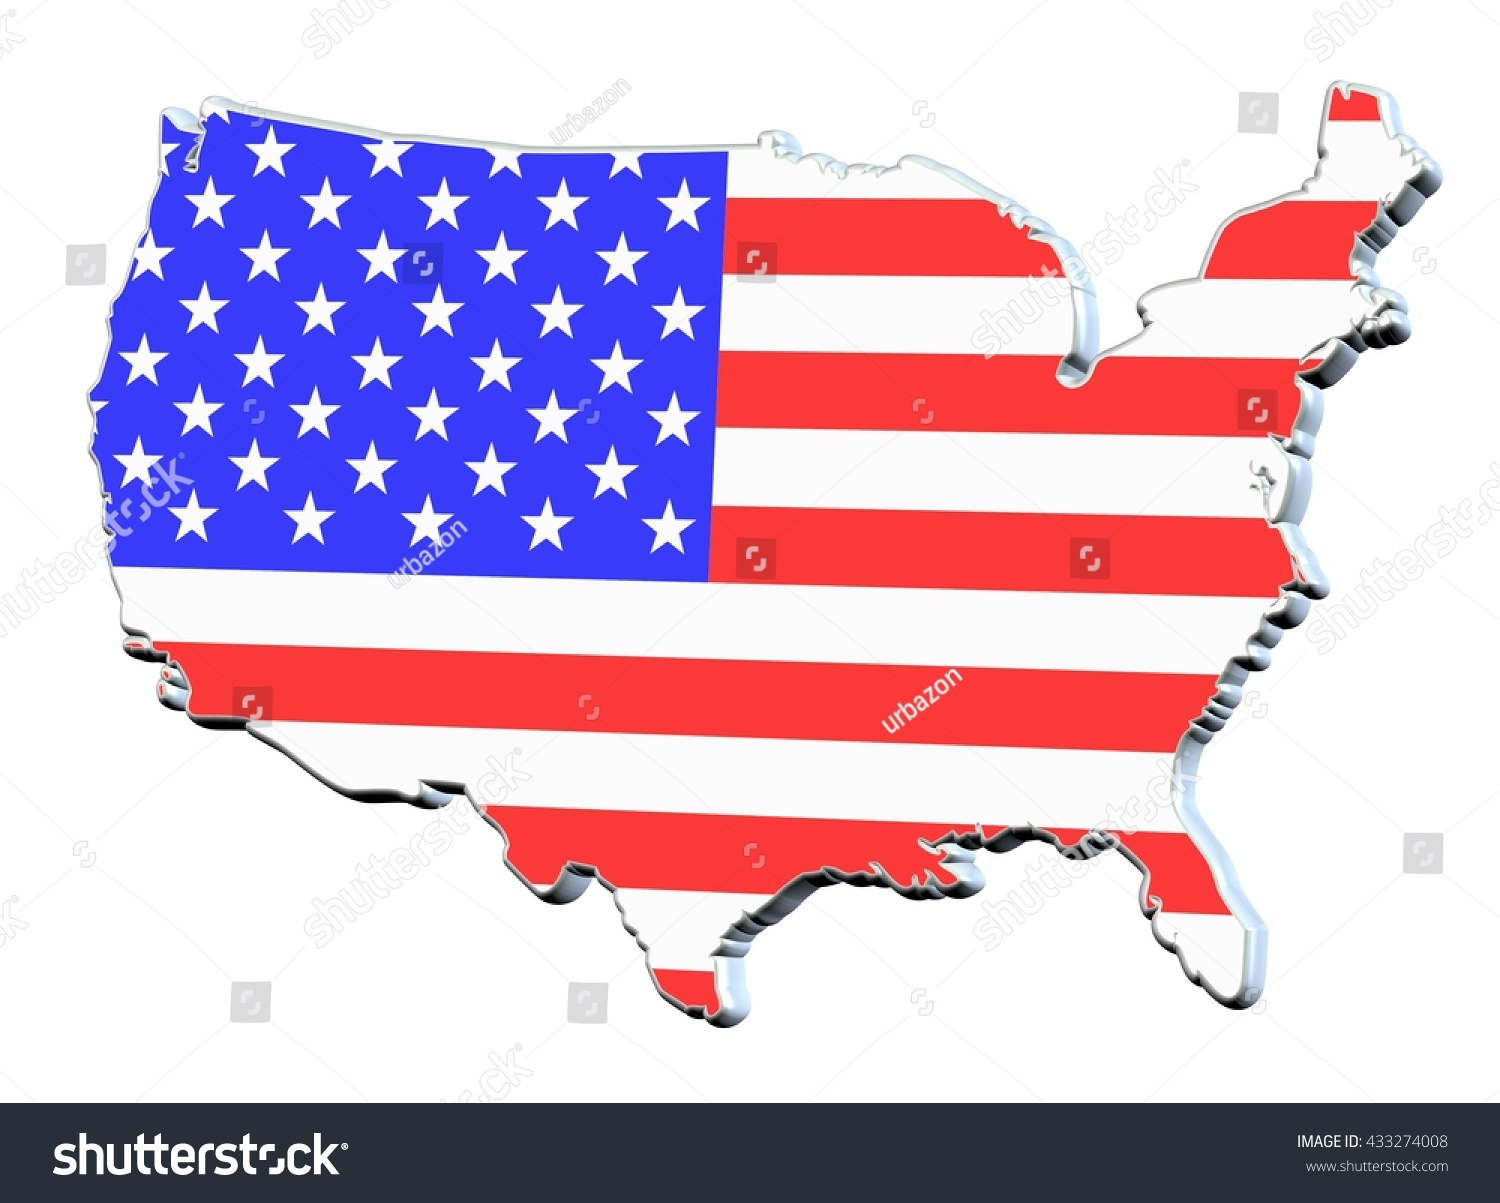 Diagram Free Collection Us Map Outline Image More Maps Diagram Outline Map United States 1860